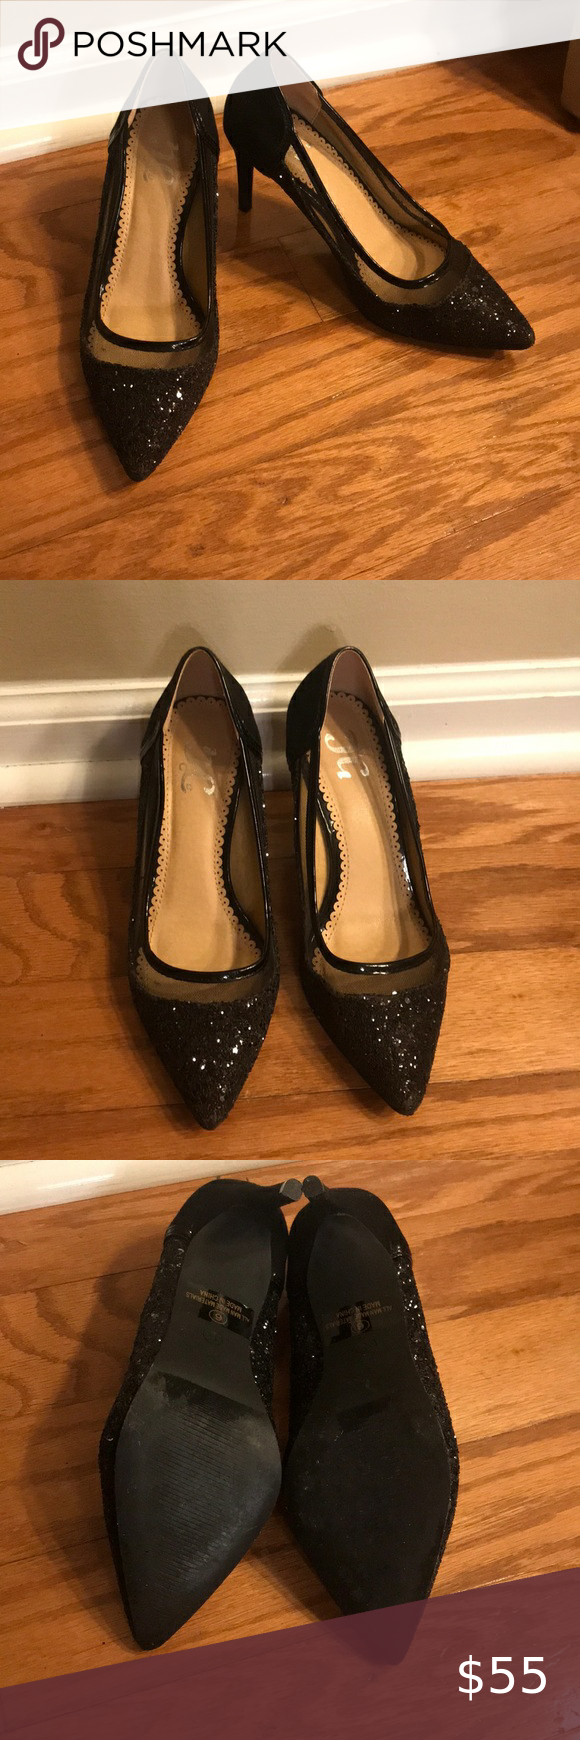 Black Glitter Kitten Heels Size 6 In 2020 Kitten Heels Shoes Women Heels Black Glitter Heels